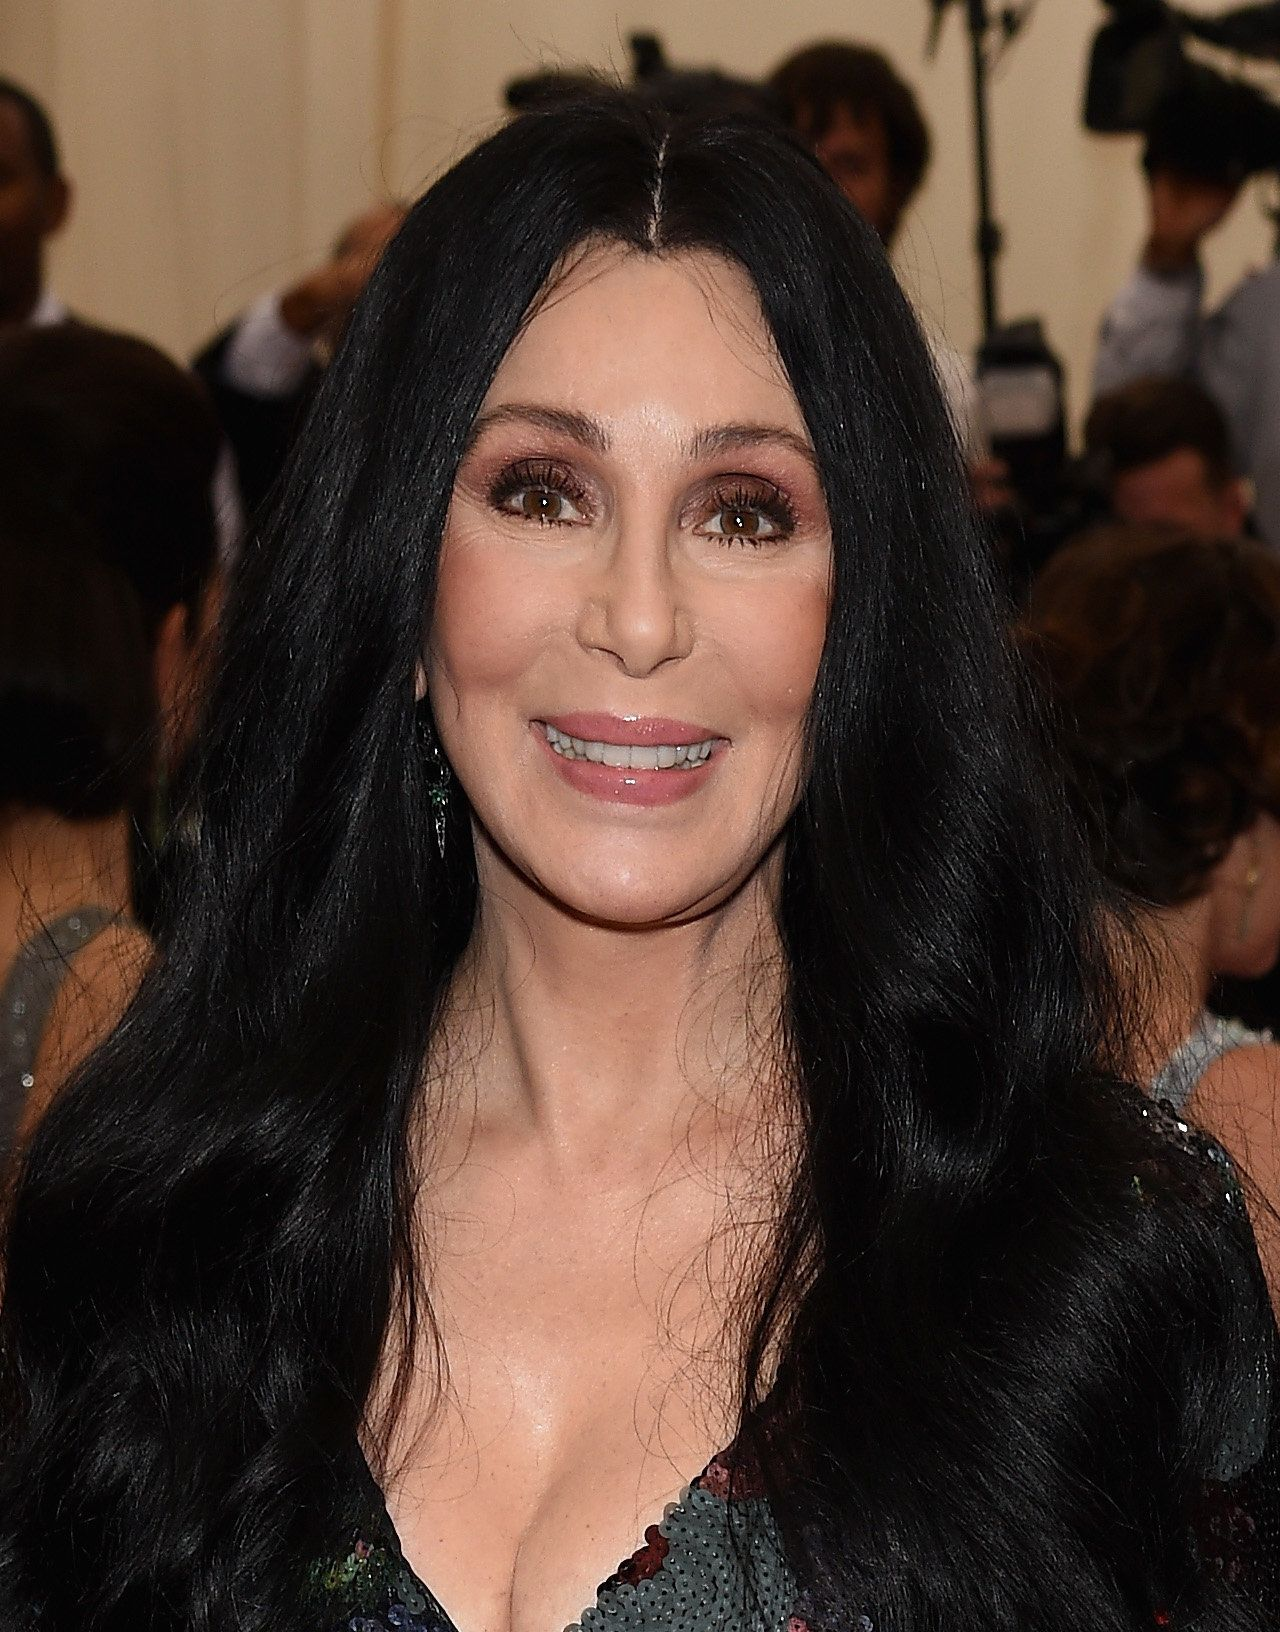 NEW YORK, NY - MAY 04: Cher attends the 'China: Through The Looking Glass' Costume Institute Benefit Gala at the Metropolitan Museum of Art on May 4, 2015 in New York City.  (Photo by Dimitrios Kambouris/Getty Images)